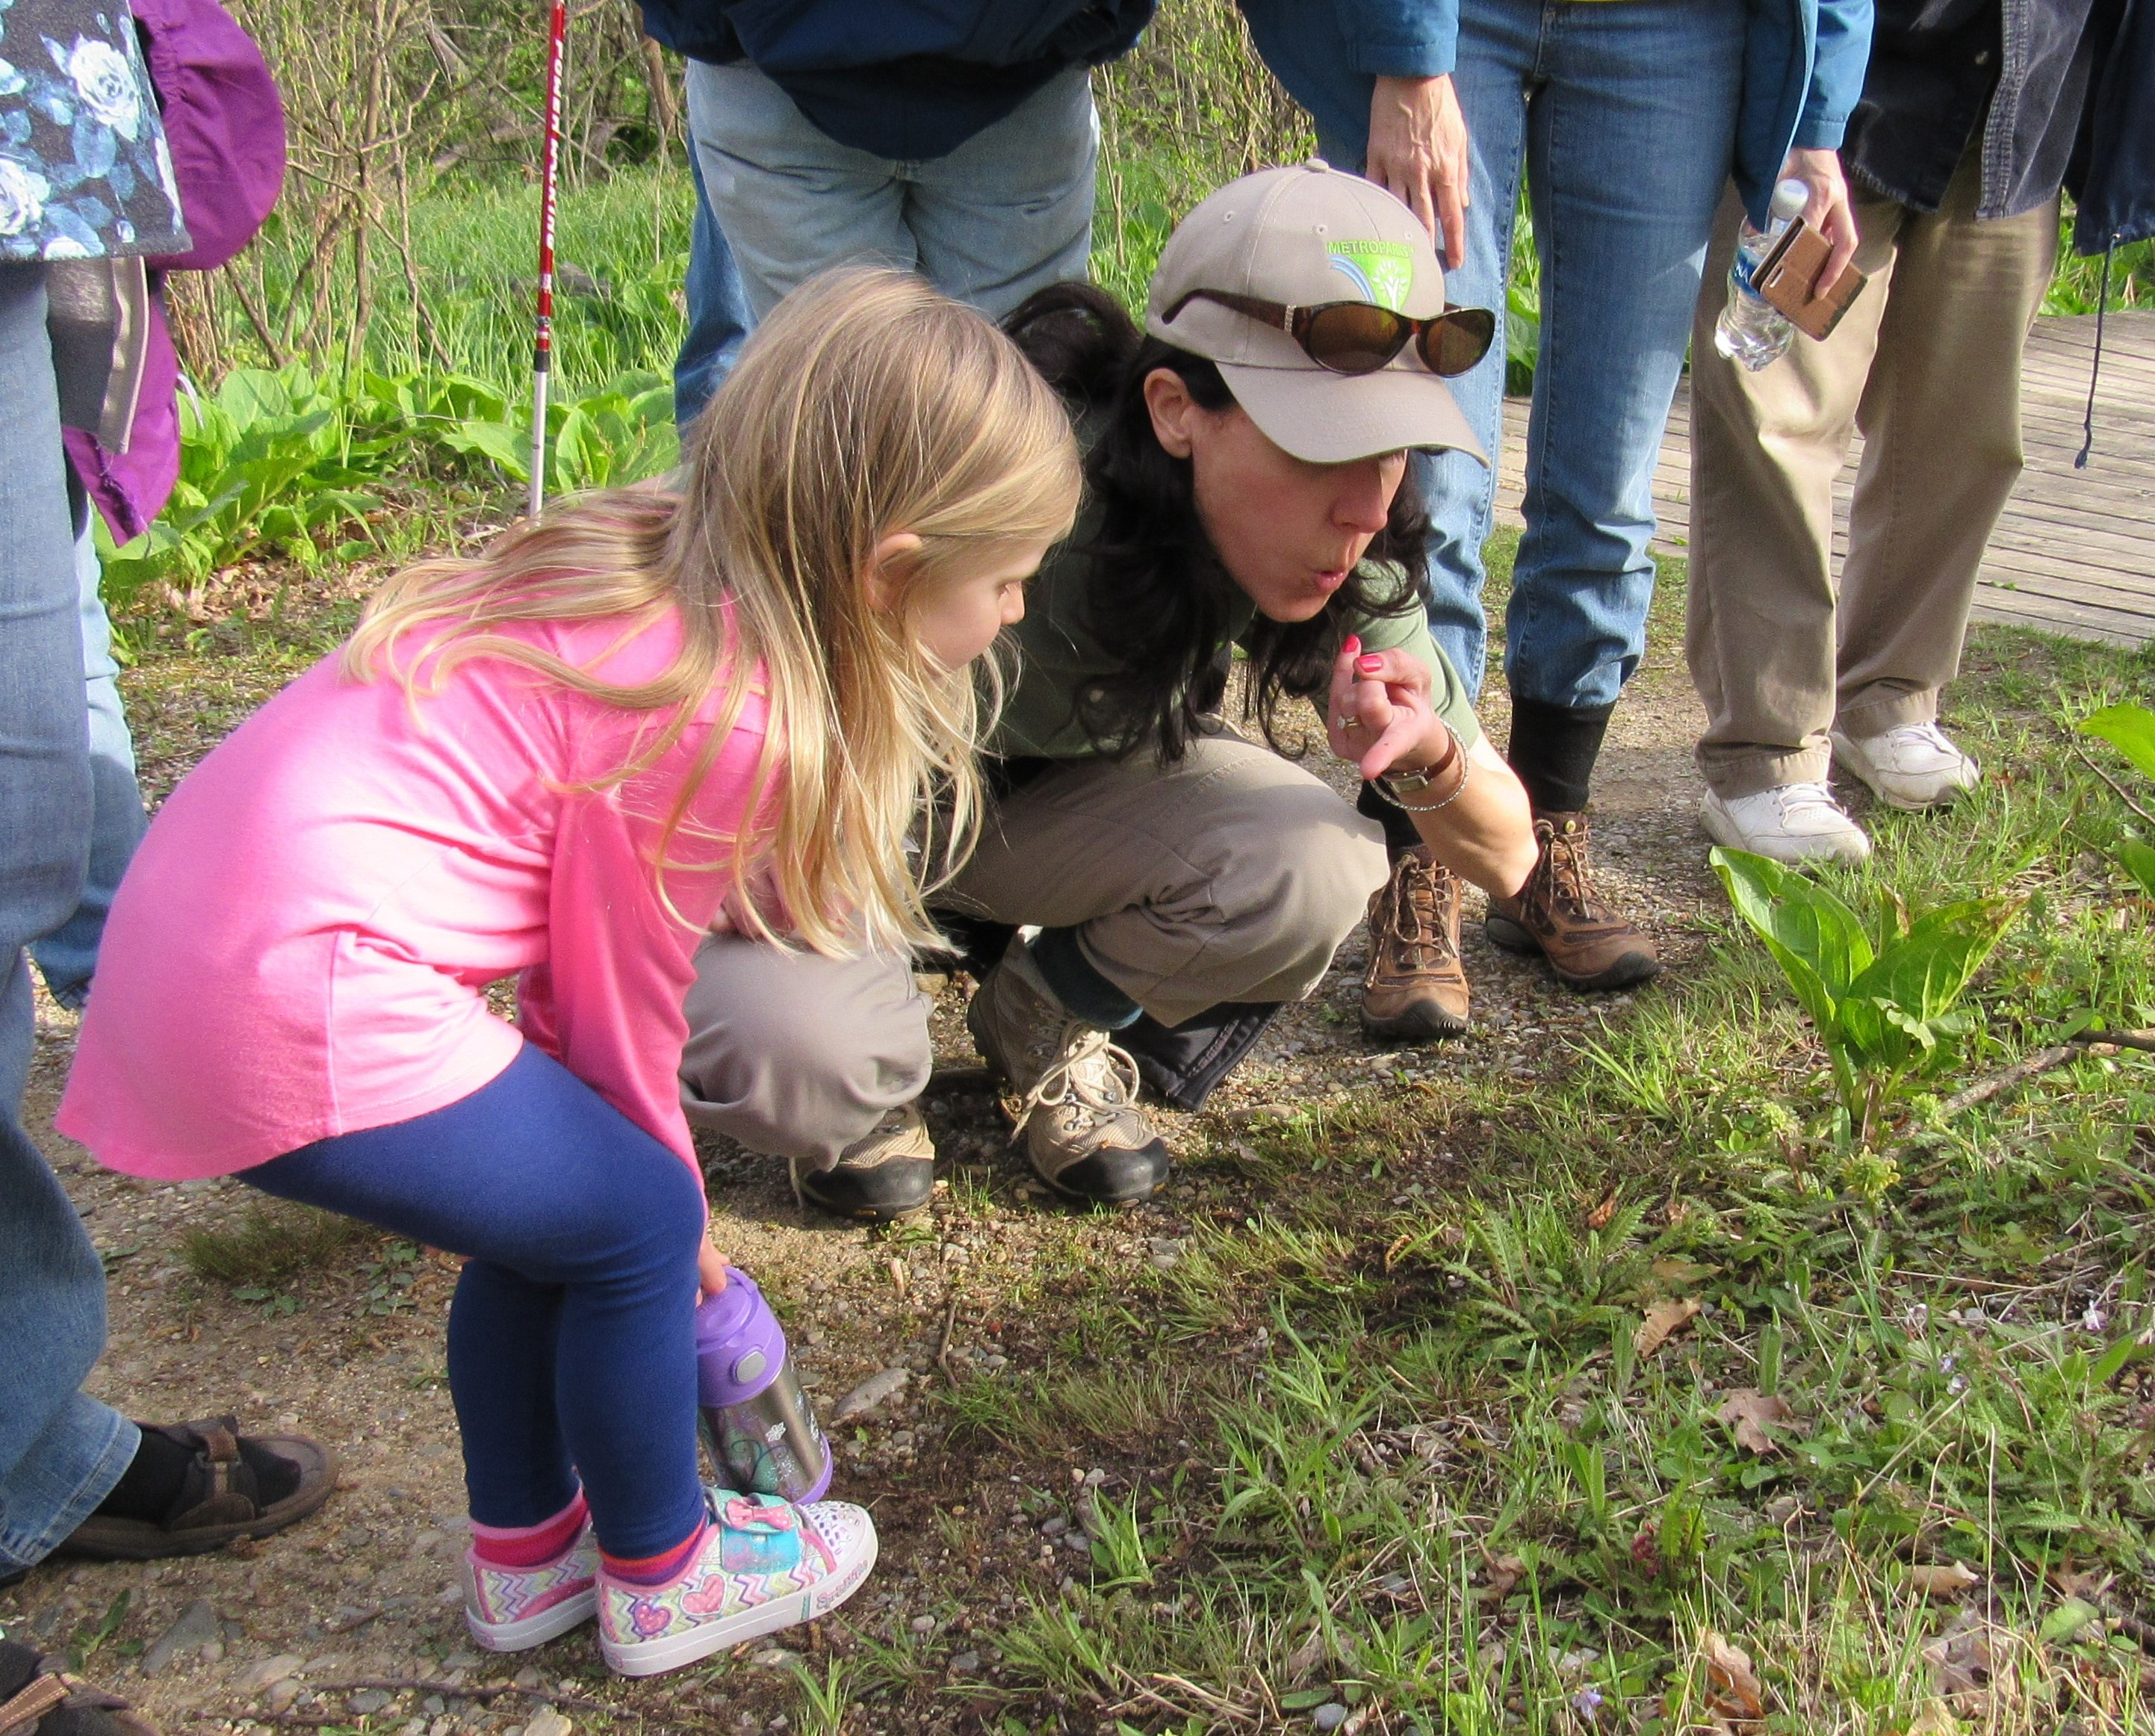 A park guide crouches down to show a young girl a bug on her finger